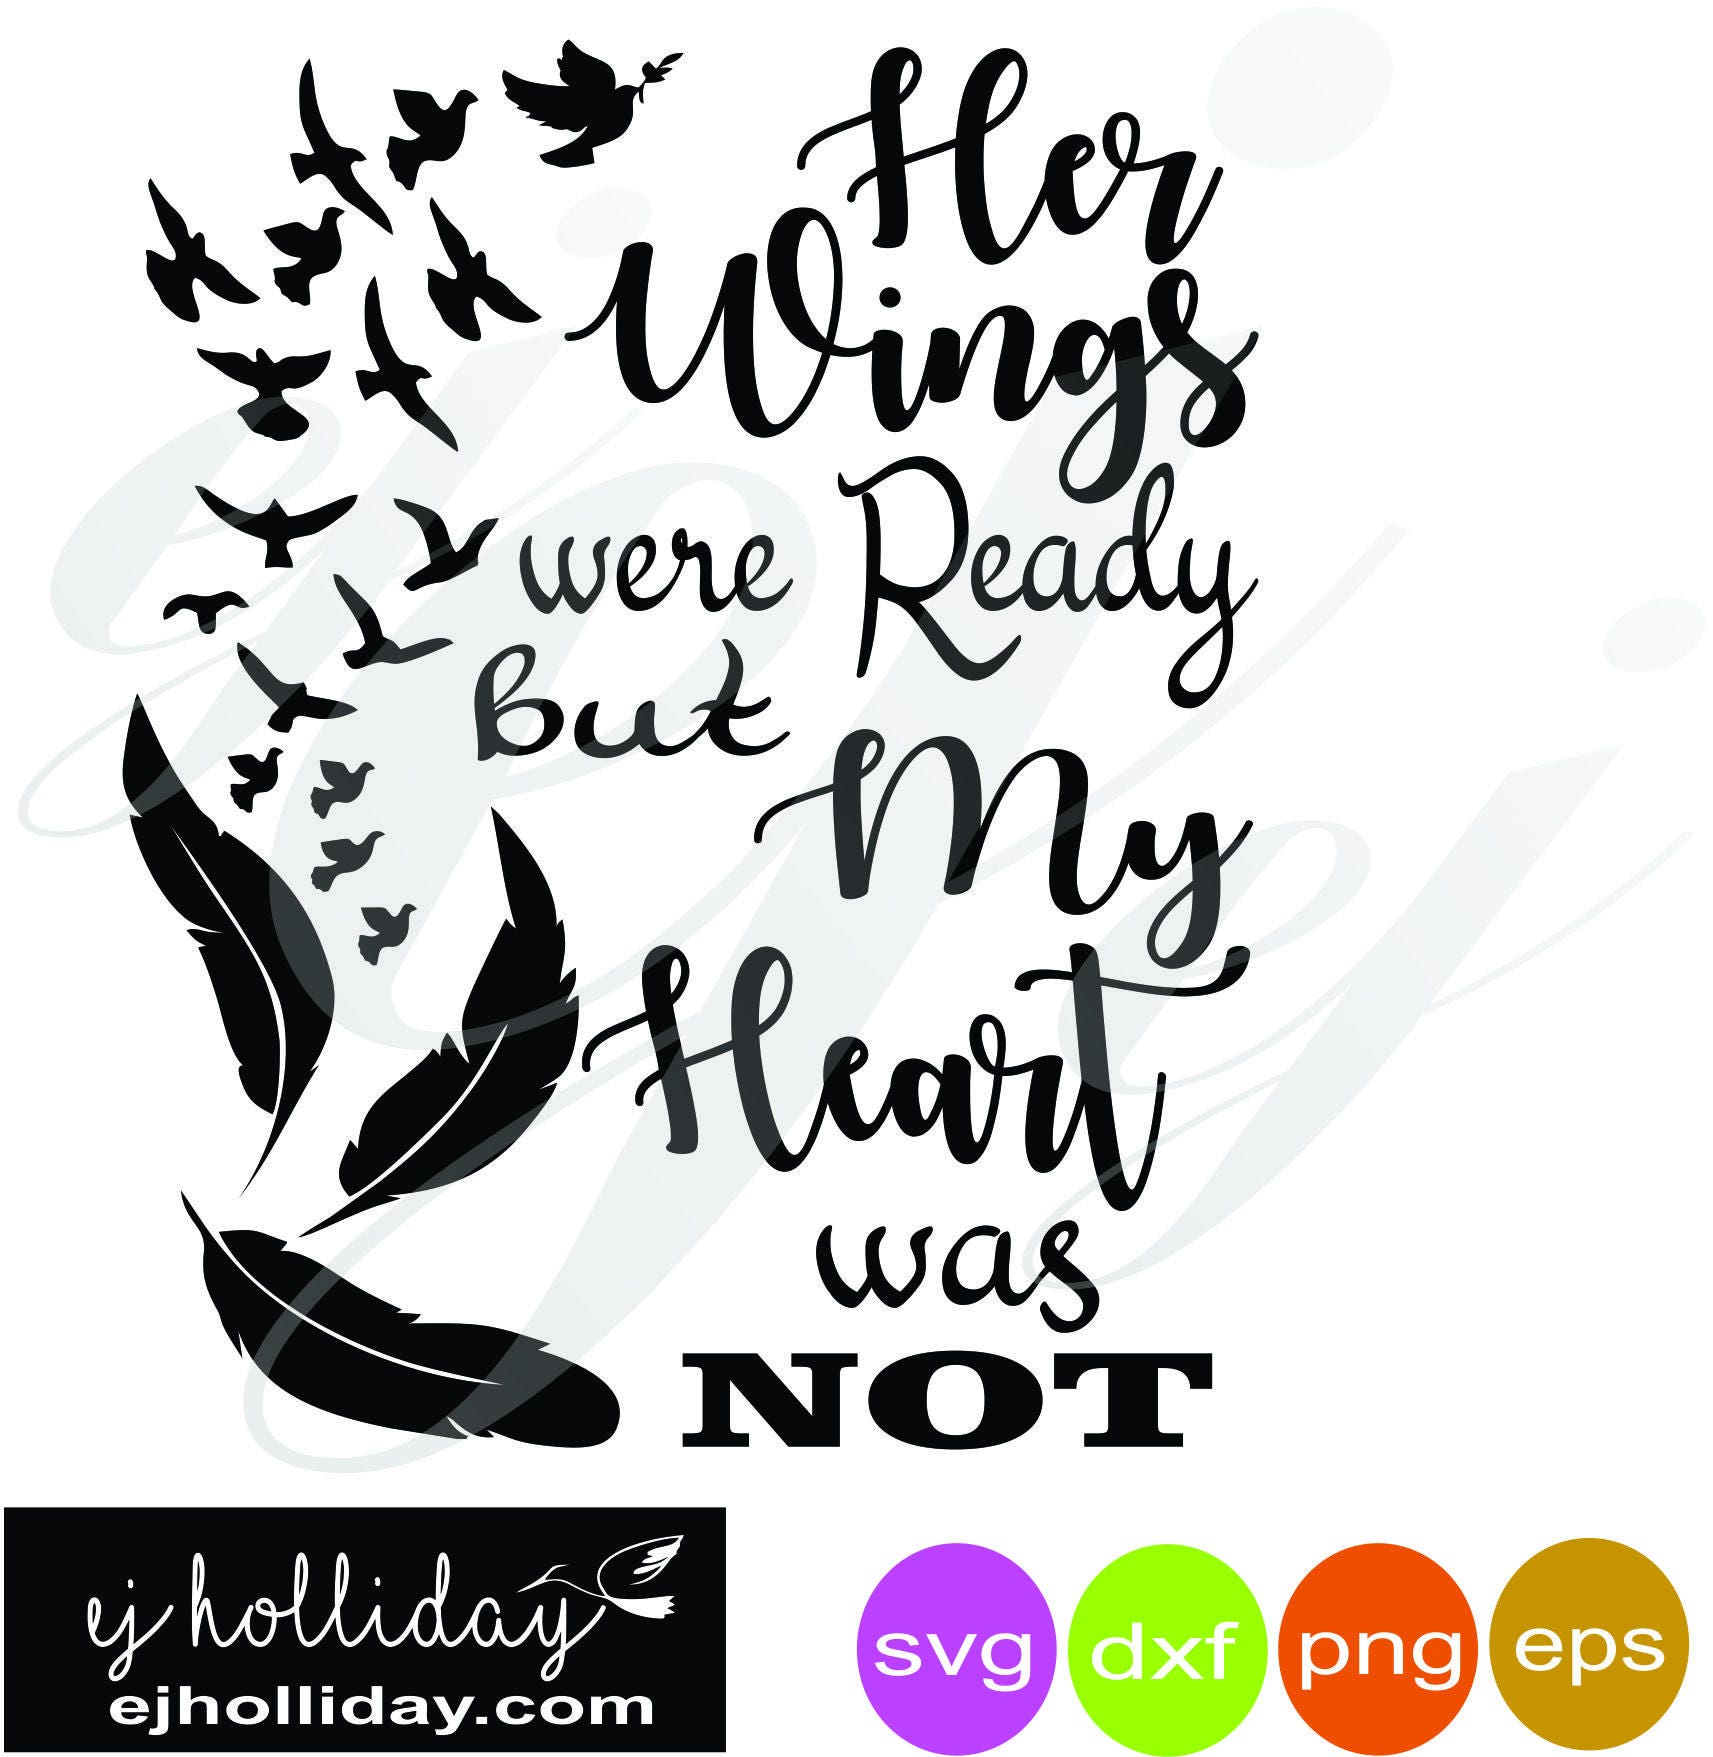 Her Wings Were Ready But My Heart Was Not Svg Dxf Eps Png